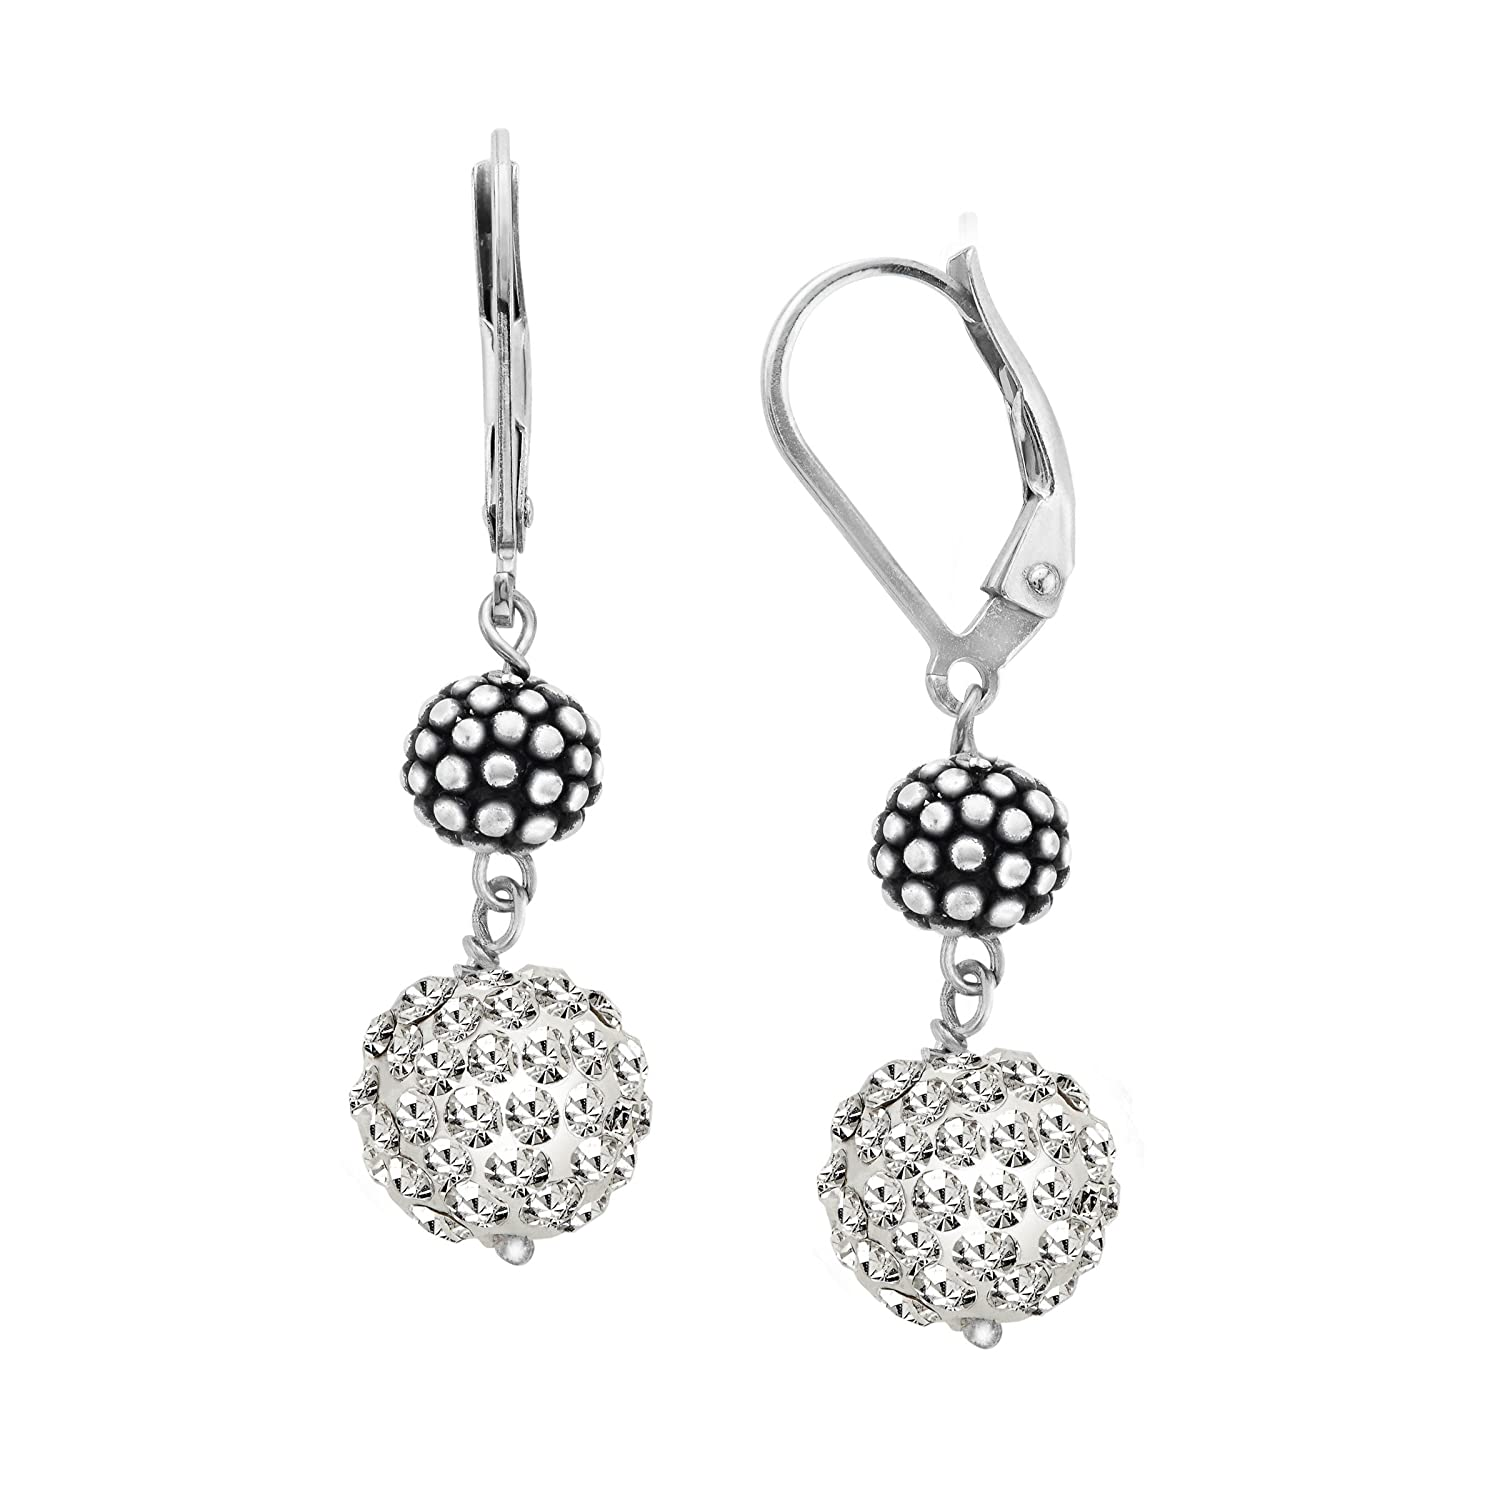 f412f39b87bff Amazon.com: Ball Drop Earrings with Swarovski Crystals Pavé in ...